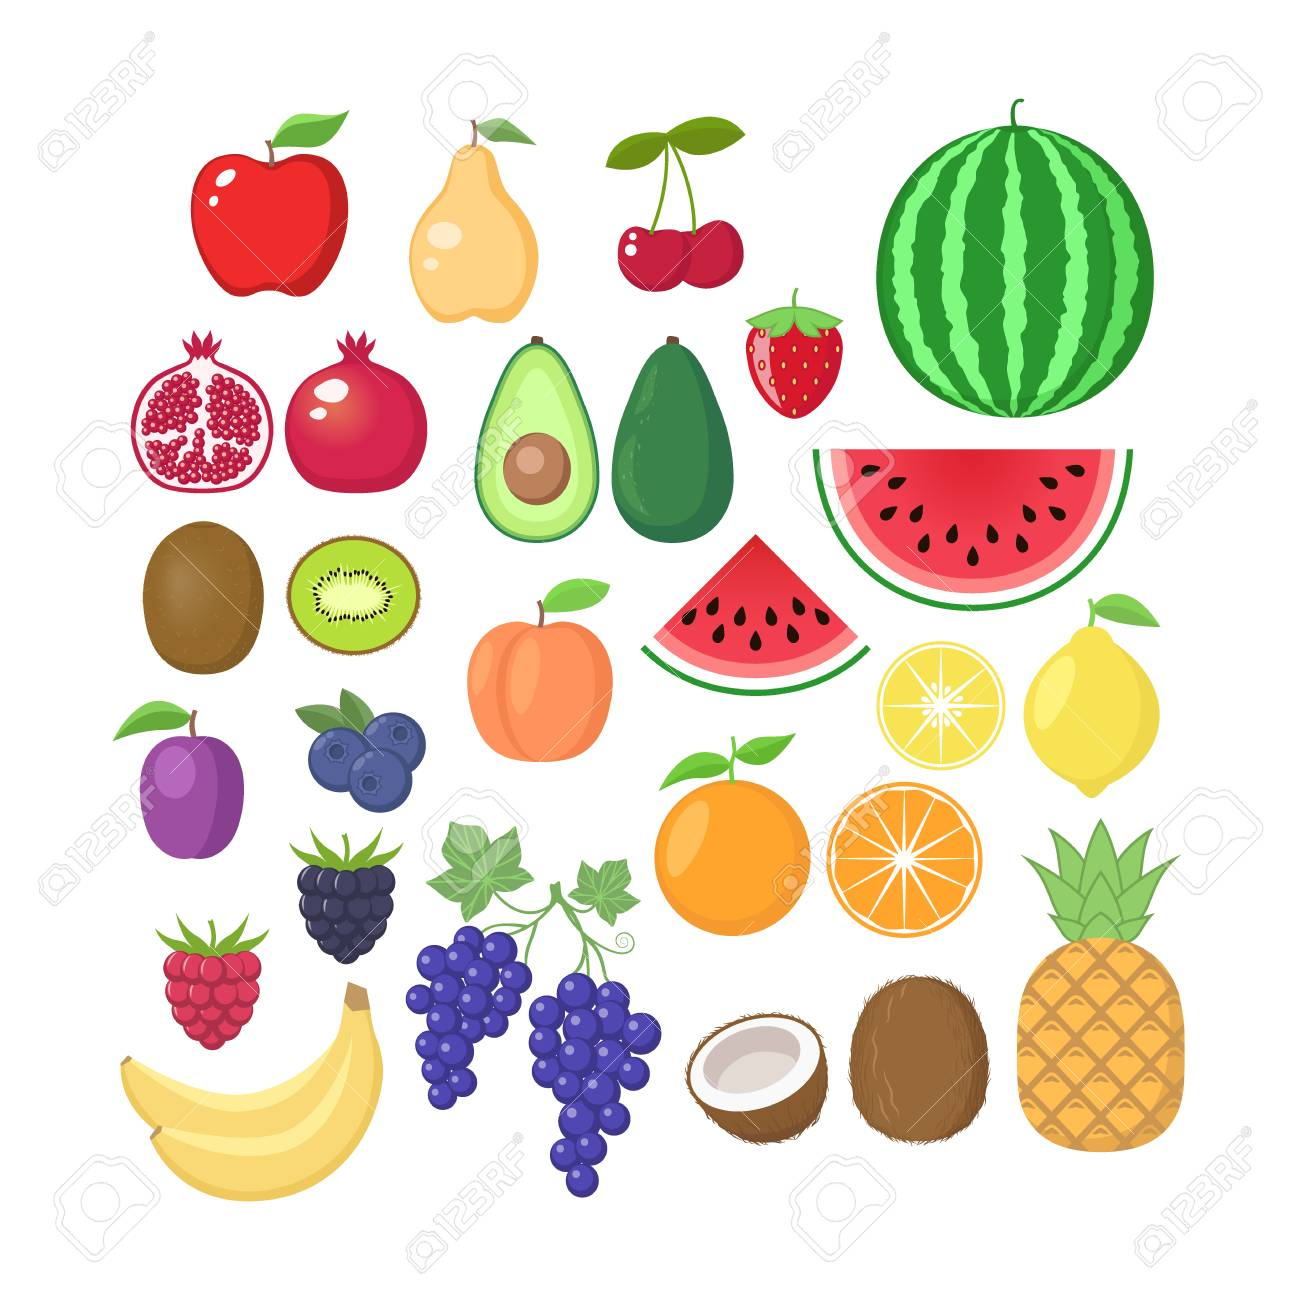 Various Fruit Collection Vector Fruits Cartoons Set Fruit Clipart Royalty Free Cliparts Vectors And Stock Illustration Image 106093766